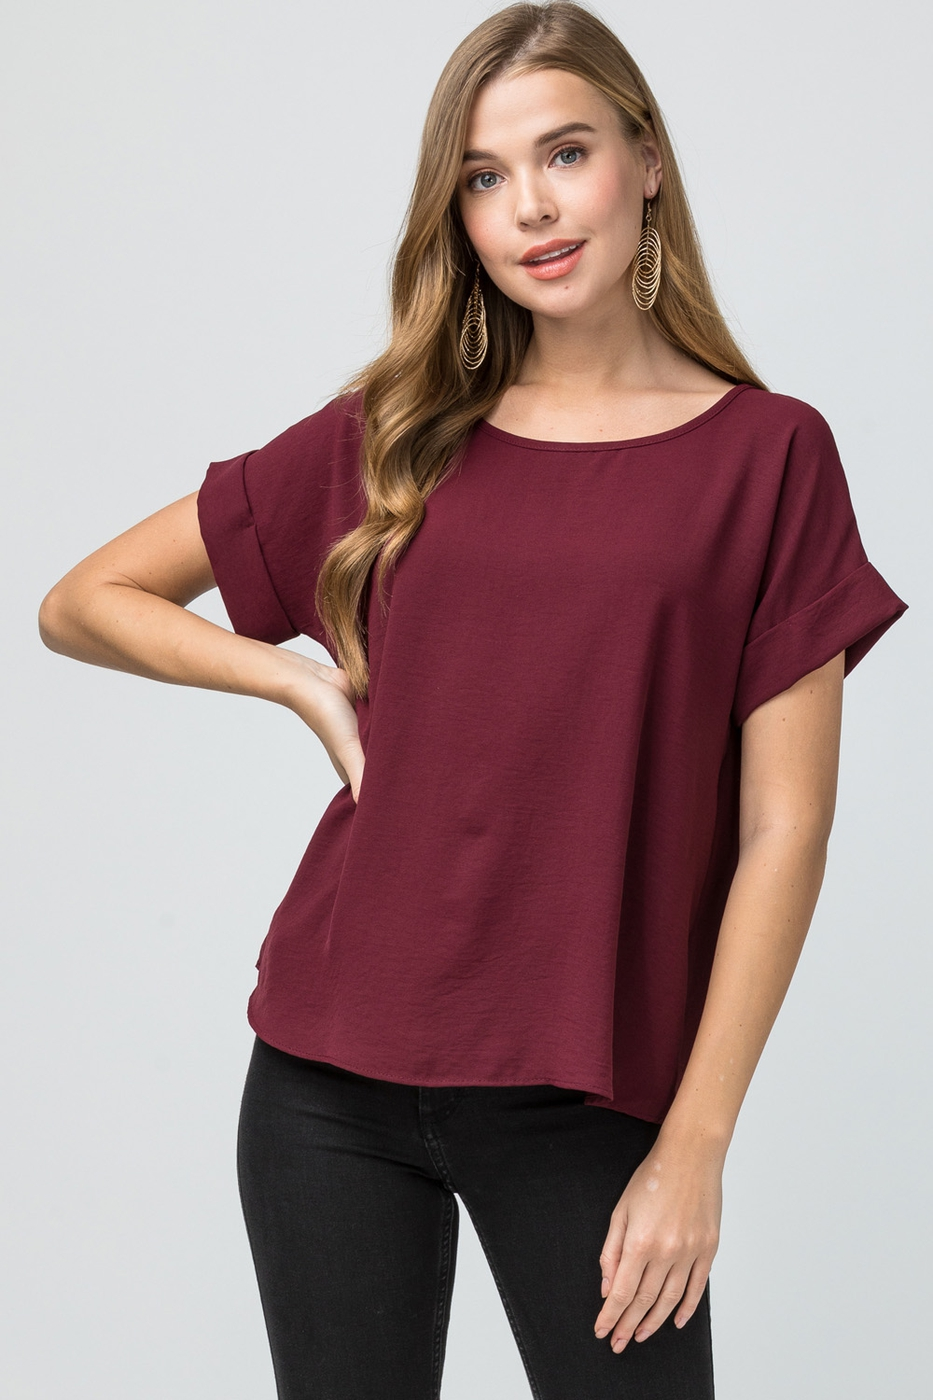 Scoop-neck top - orangeshine.com